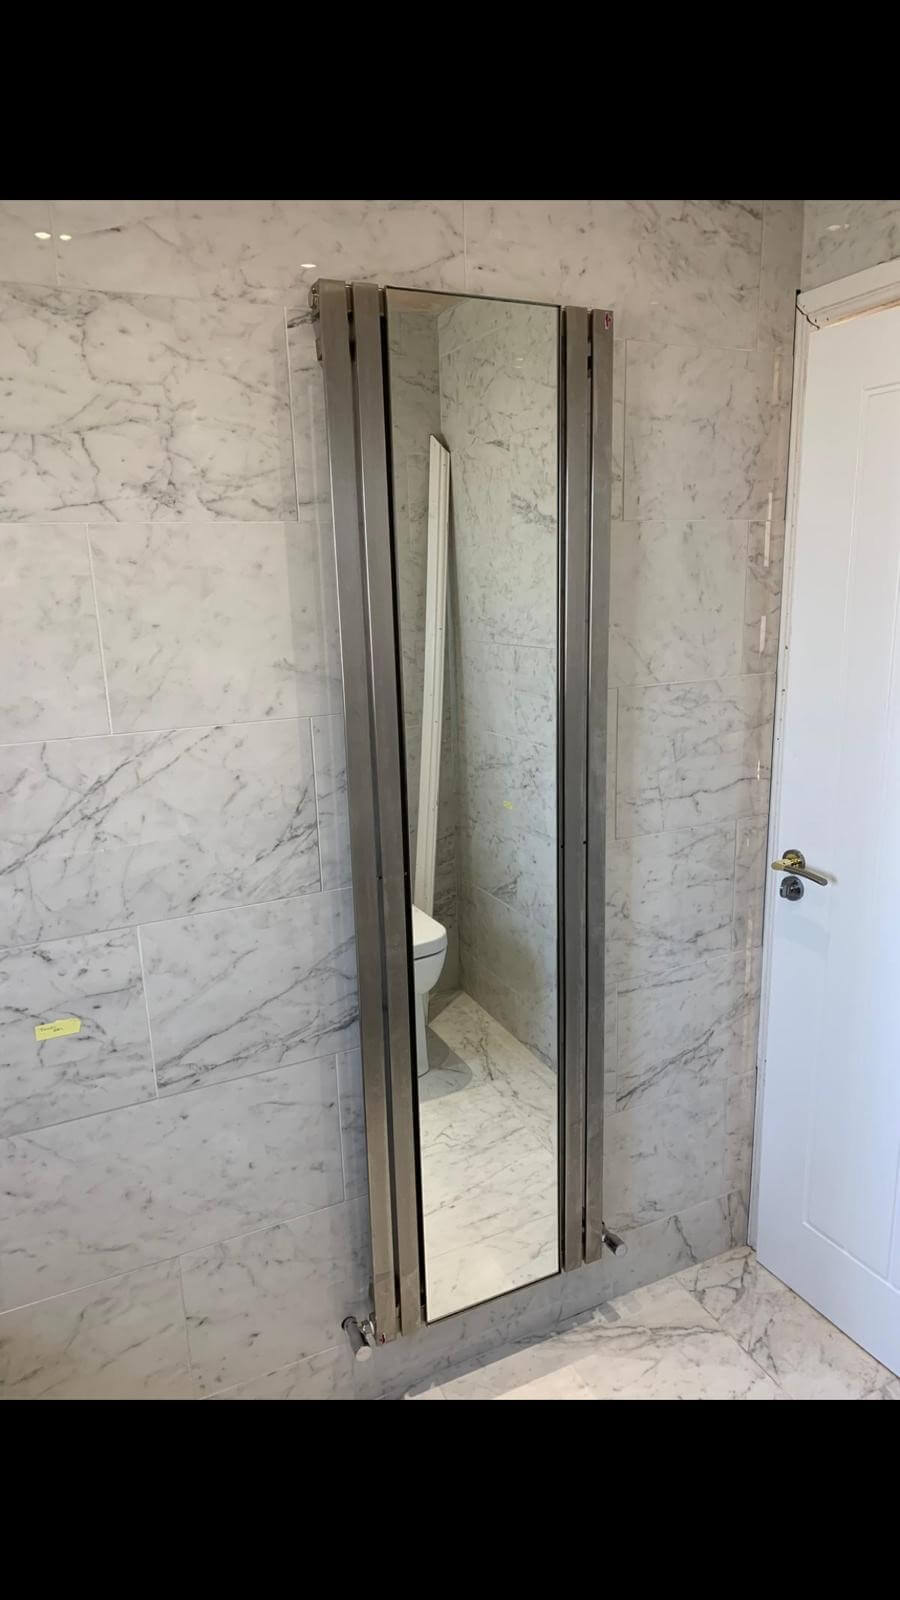 This image shows a standing radiator with a built in mirror, installed by Celsius Home Improvements as part of a bathroom renovation in Liverpool.